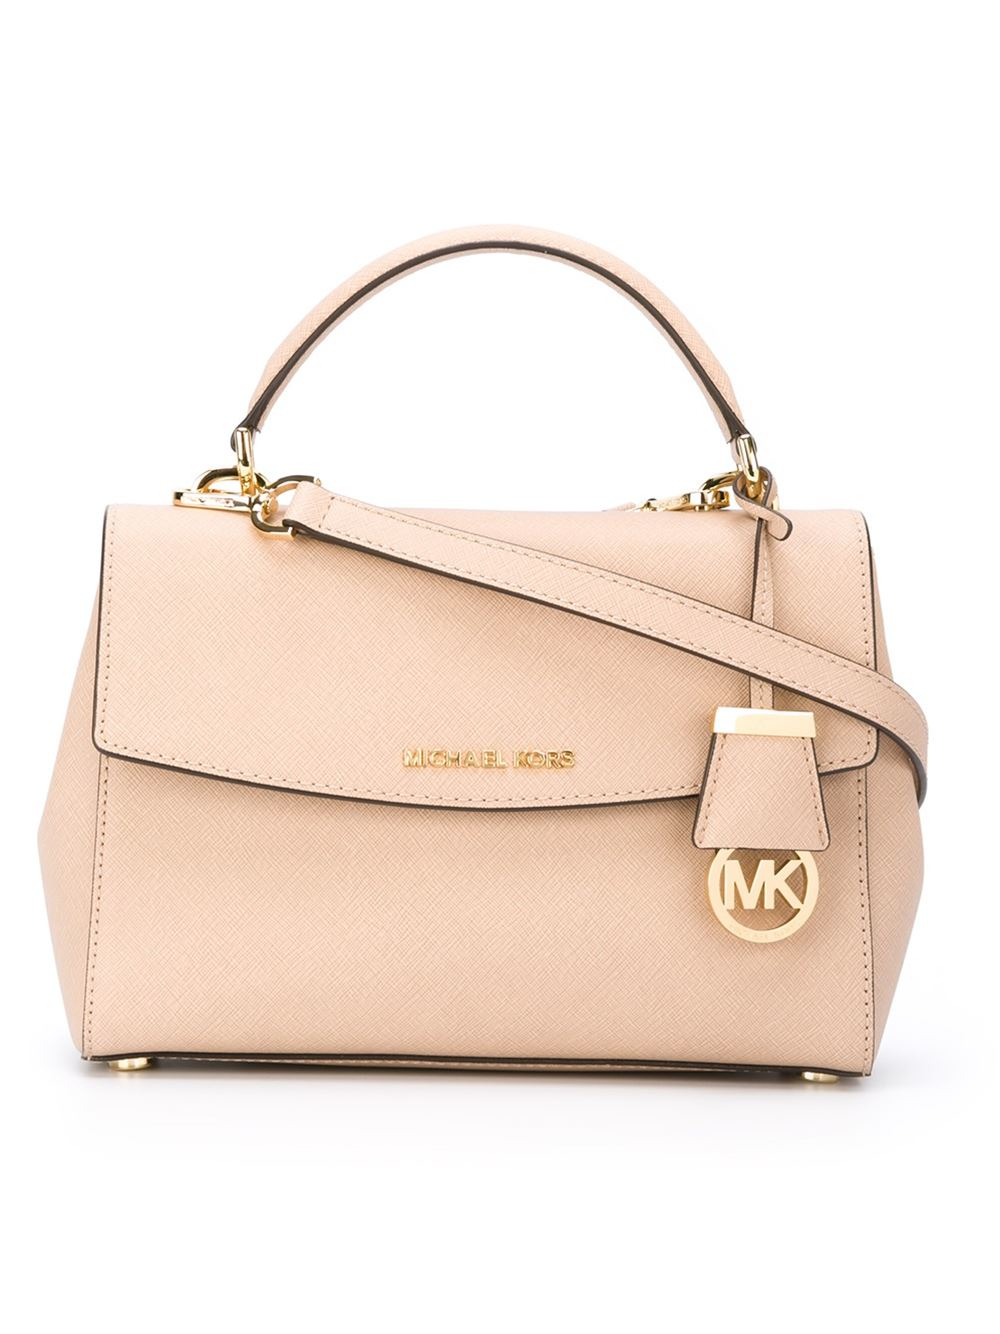 Shop a great selection of MICHAEL Michael Kors Women's Totes at Nordstrom Rack. Find designer MICHAEL Michael Kors Women's Totes up to 70% off and get free shipping on orders over $